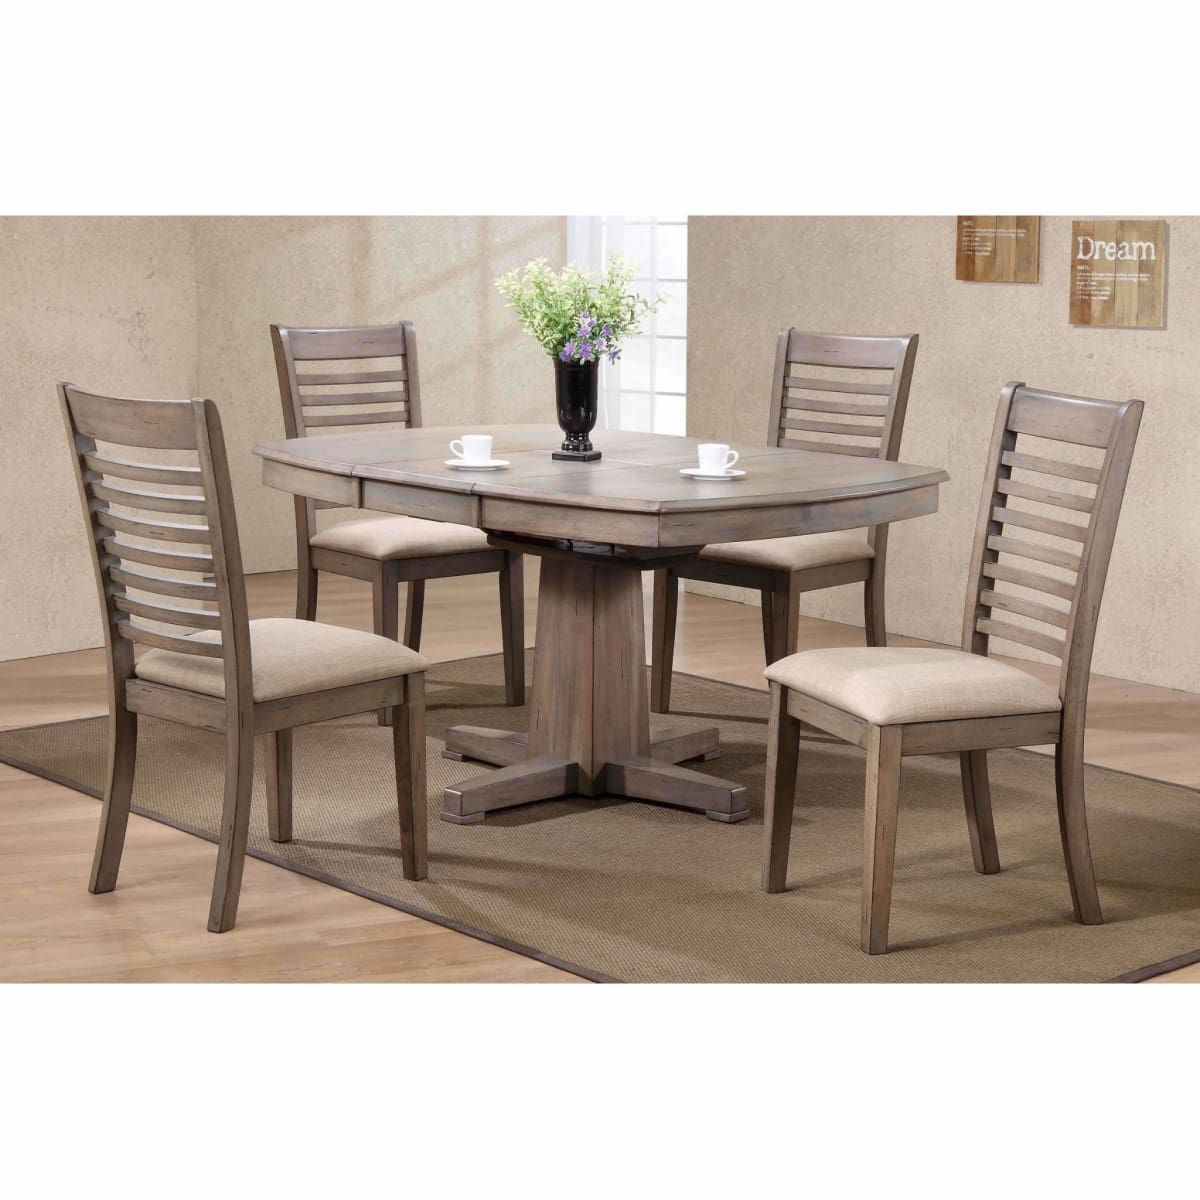 Ventura 42 X 57 Pedestal Table - DININGCOUNTERHEIGHT